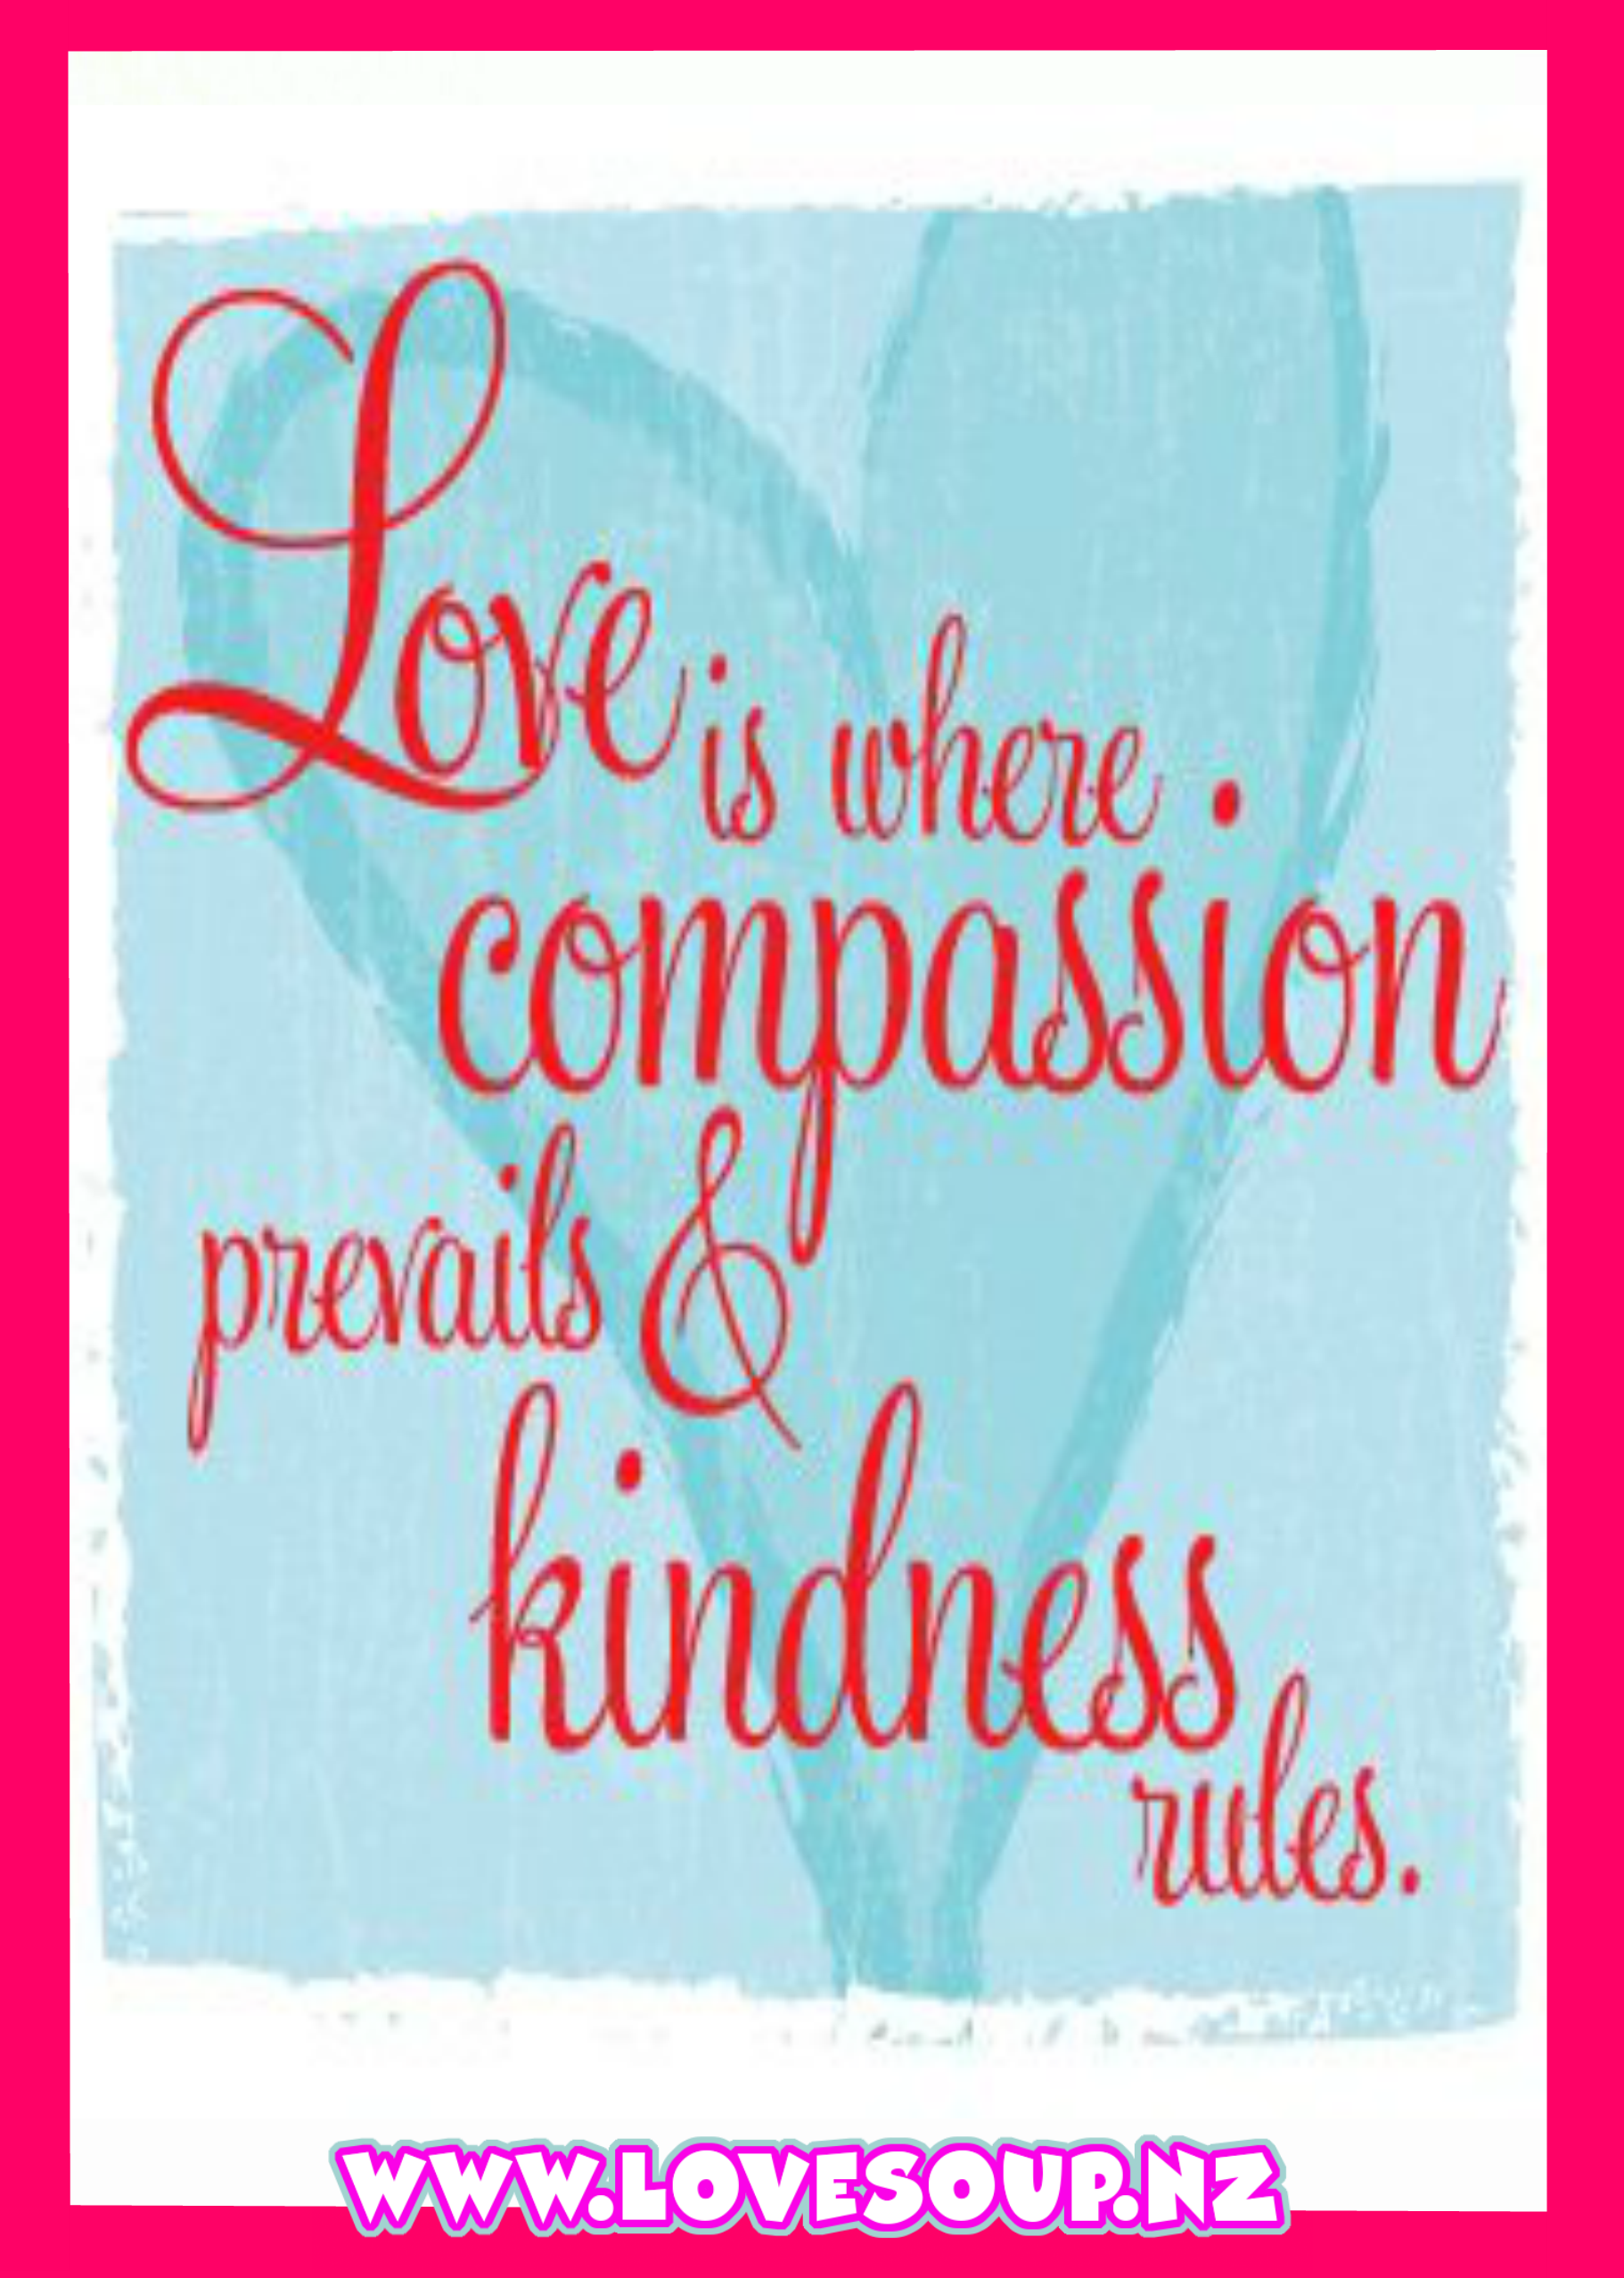 love compassion kindness www.lovesoup.nz